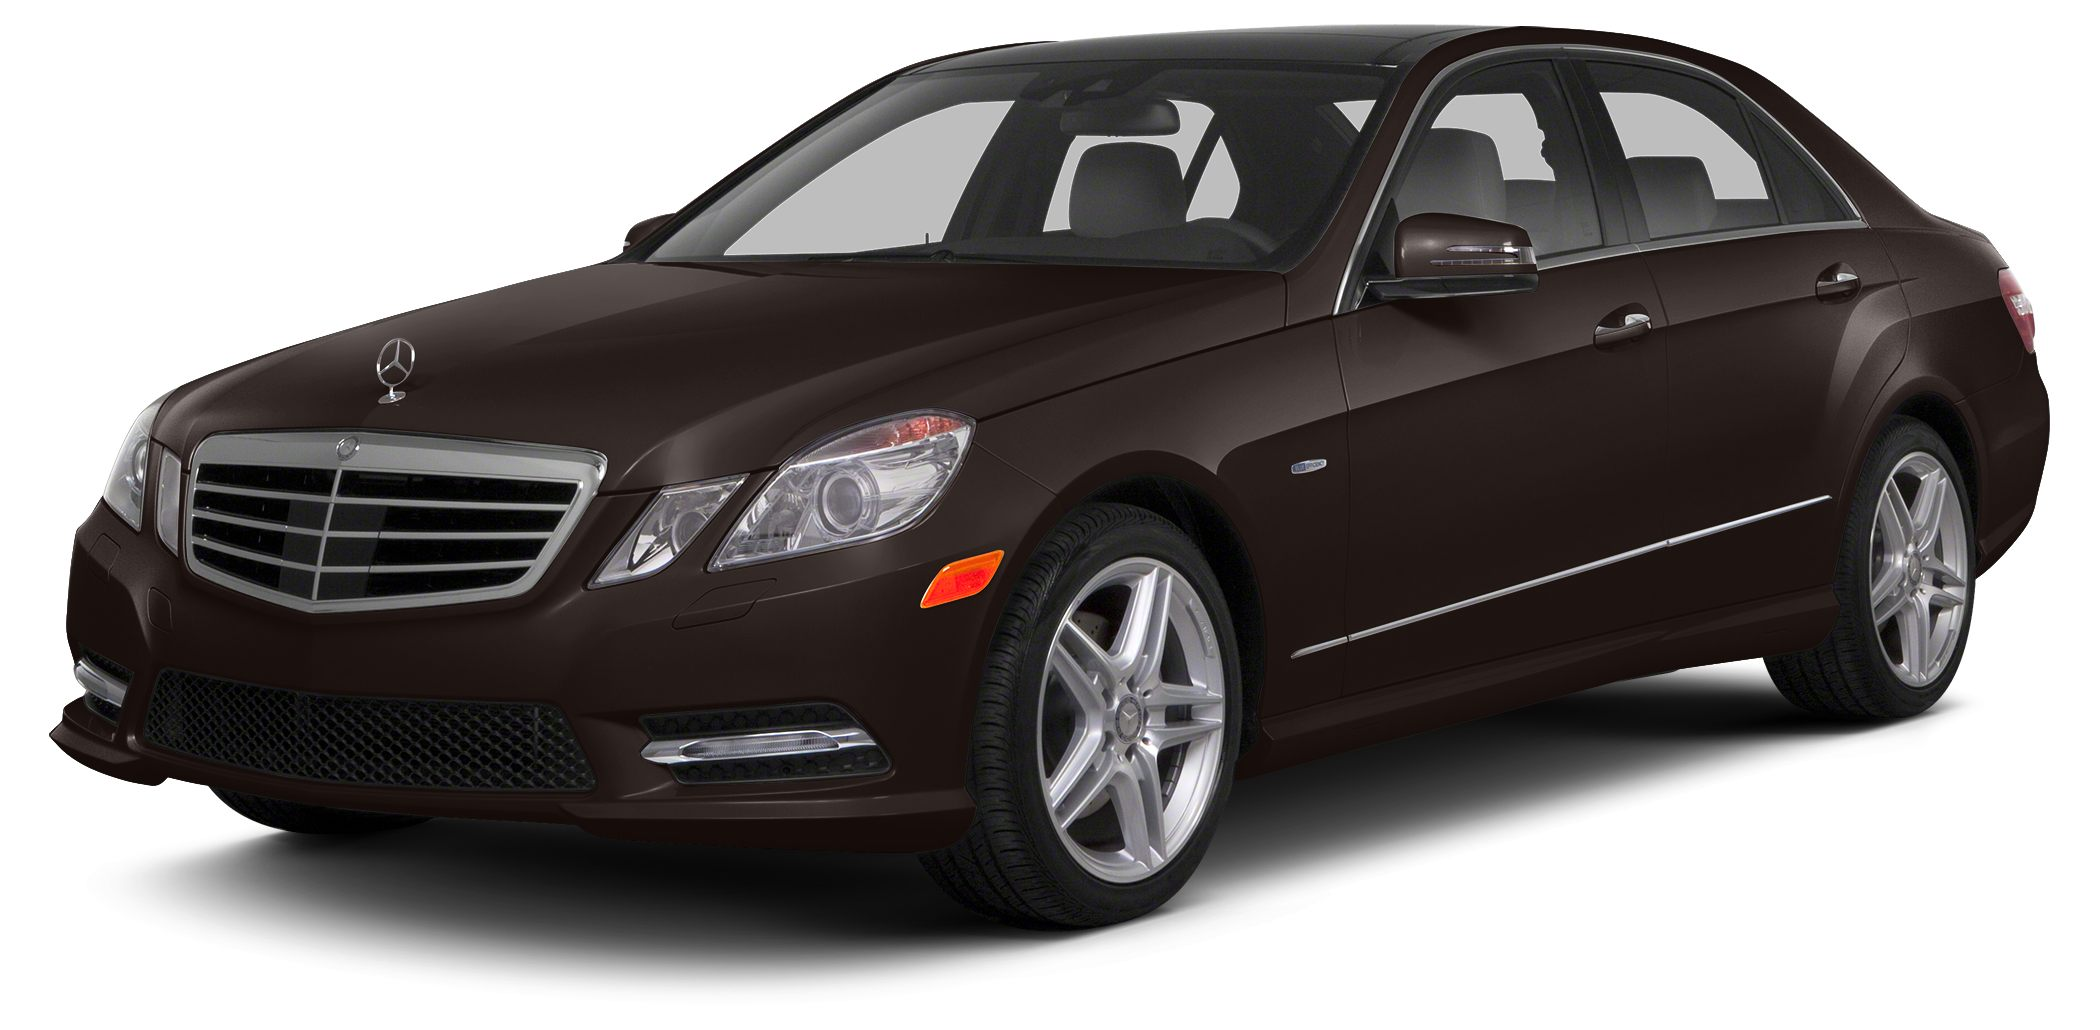 2013 MERCEDES E-Class E350 This beautiful 2013 E350 Luxury sedan is just in off lease and only has